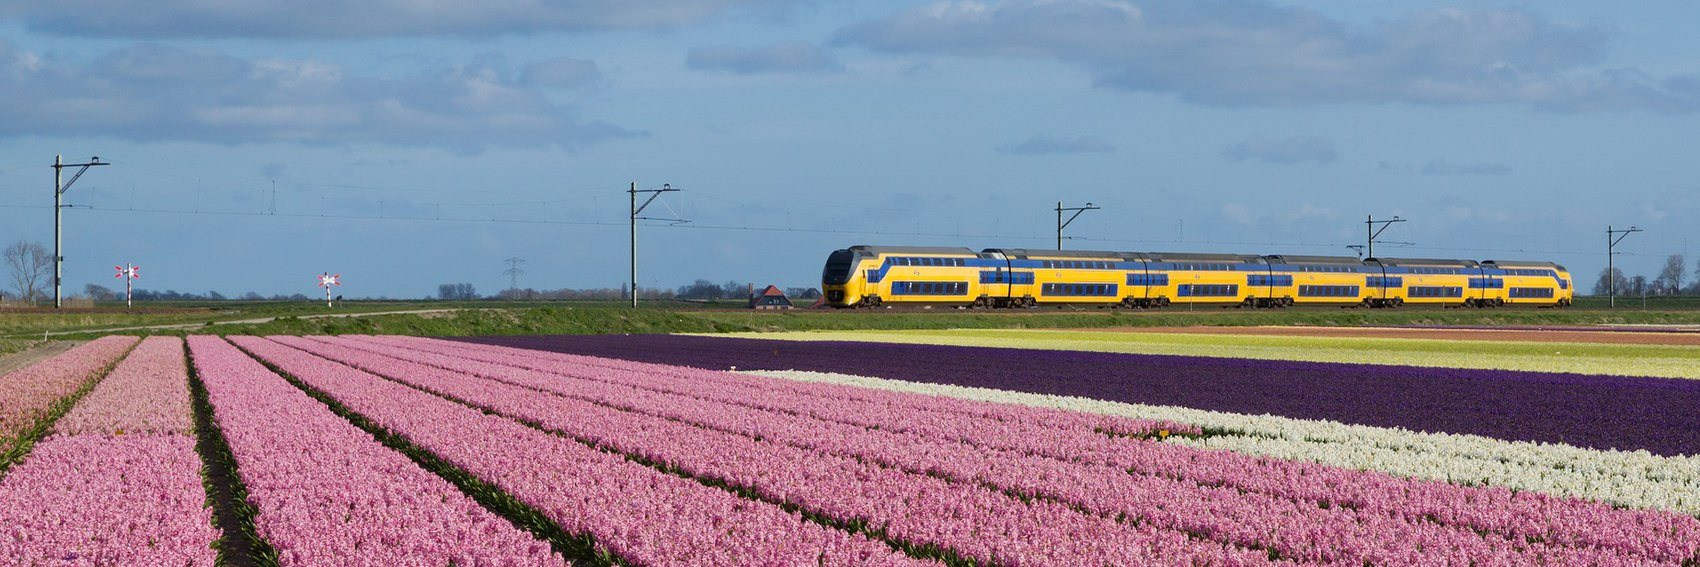 Rail travel in the Netherlands